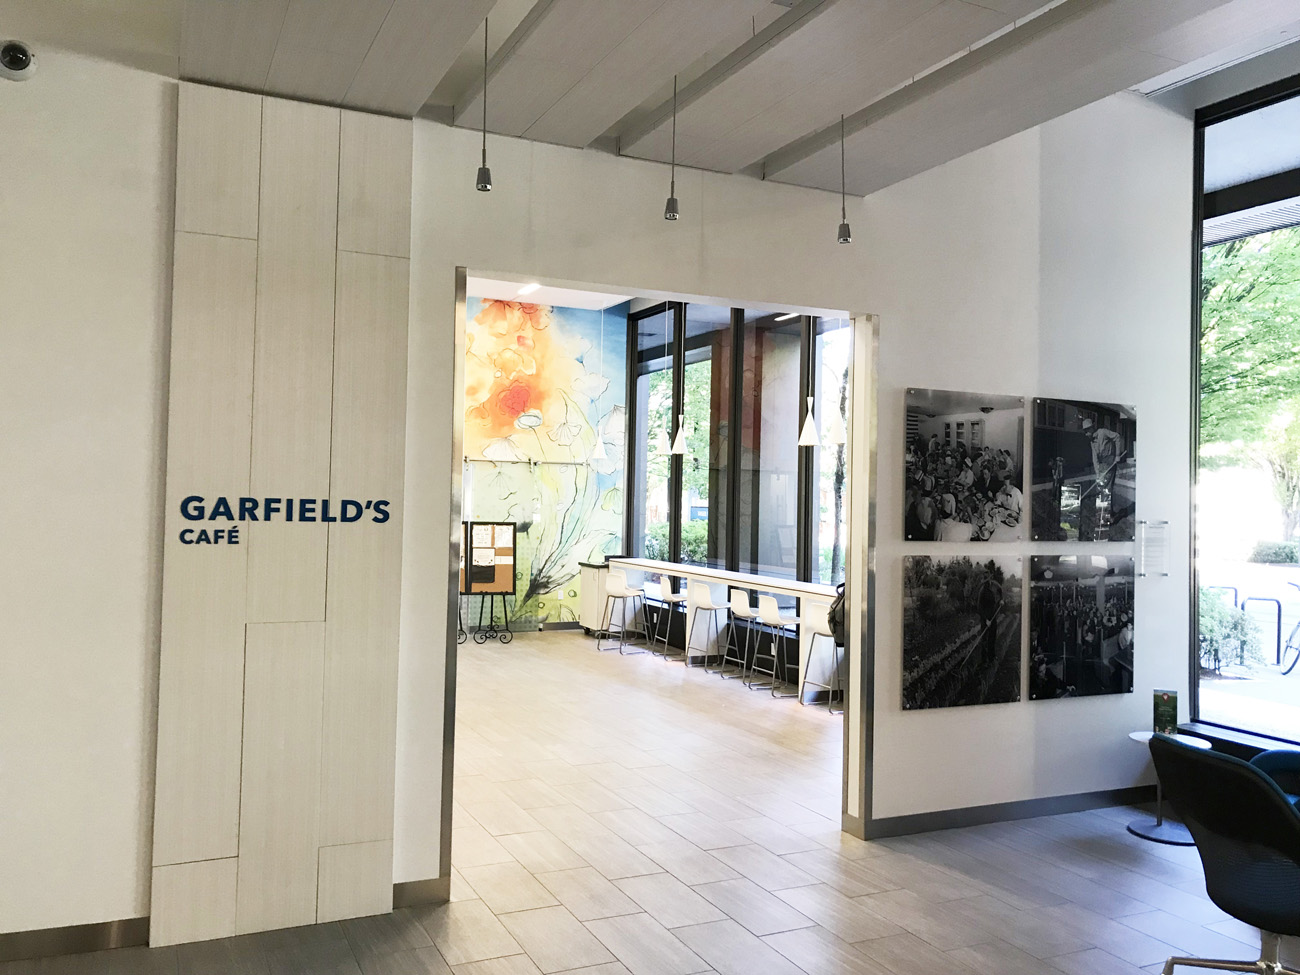 Entrance to Garfield's Cafe inside Kaiser Permanente's Portland offices.